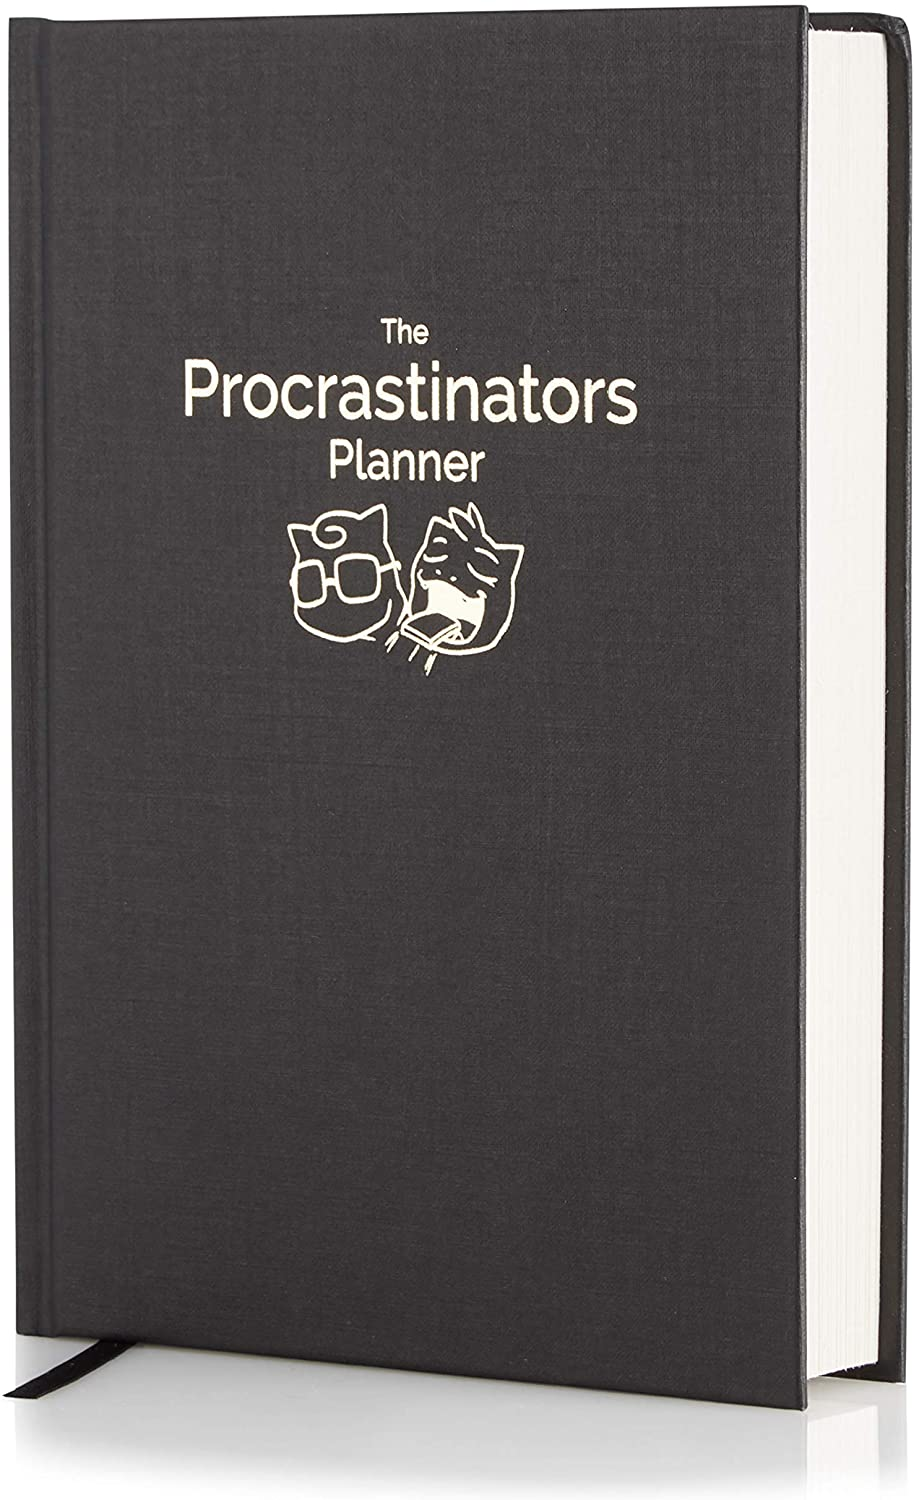 The Procrastinators Planner - Daily/Weekly Organizer Designed to Increase Productivity and Combat Procrastination - Hardcover Half Year 182 Day Planner with Science and Philosopy of Procrastination